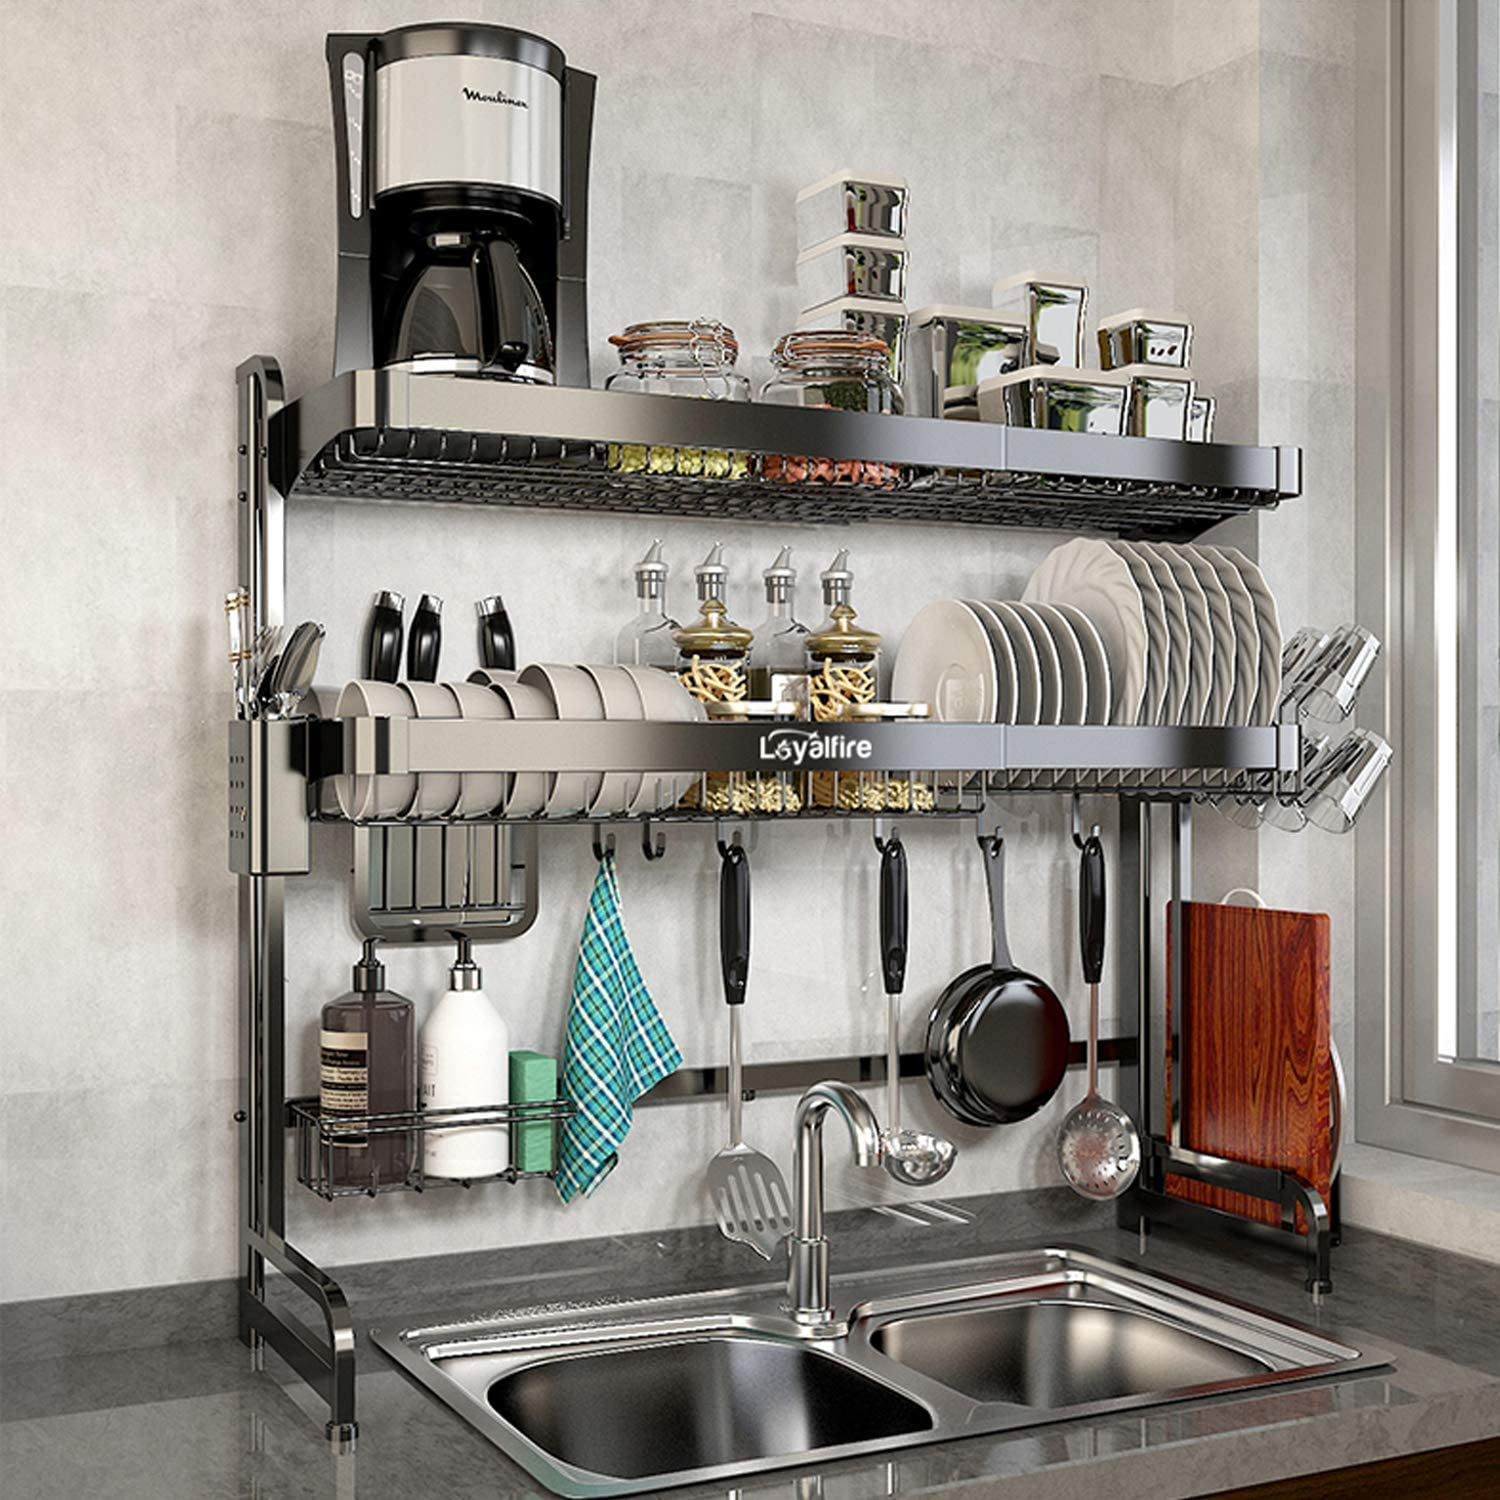 Over Sink Dish Drying Rack, Loyalfire 2 Tier Stainless Steel Storage Expandable Kitchen Dish Rack (24.4'' - 38.19''), Large Dish Drainer Shelf Adjustable Rack with Utensil Holder and Cup Hanging Set